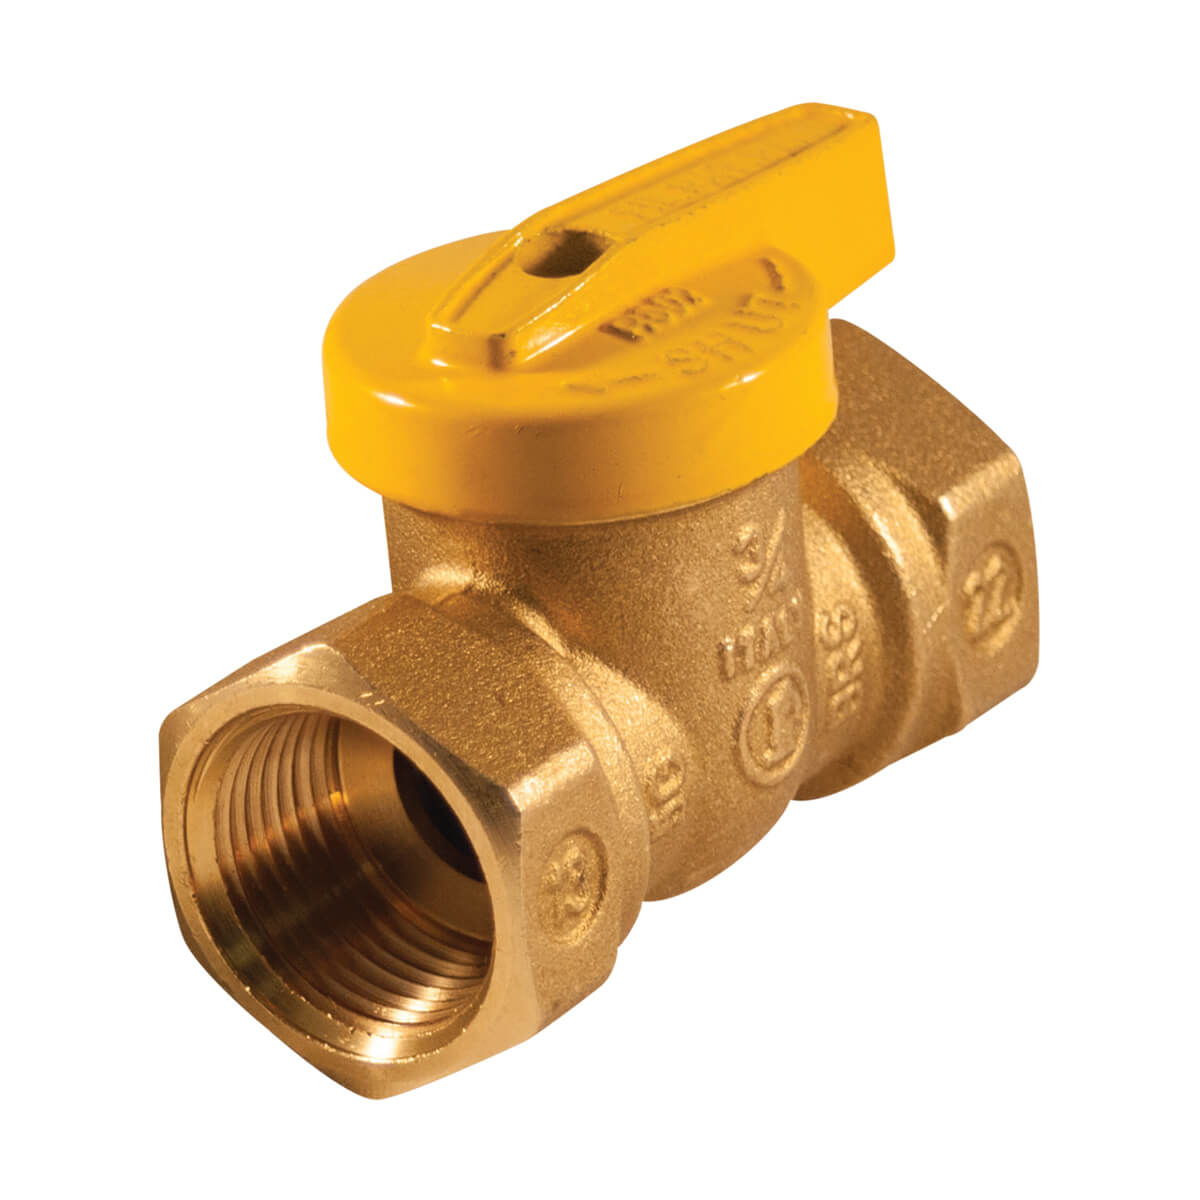 Gas Ball Valve 3/4-in Lever Handle One Piece Body